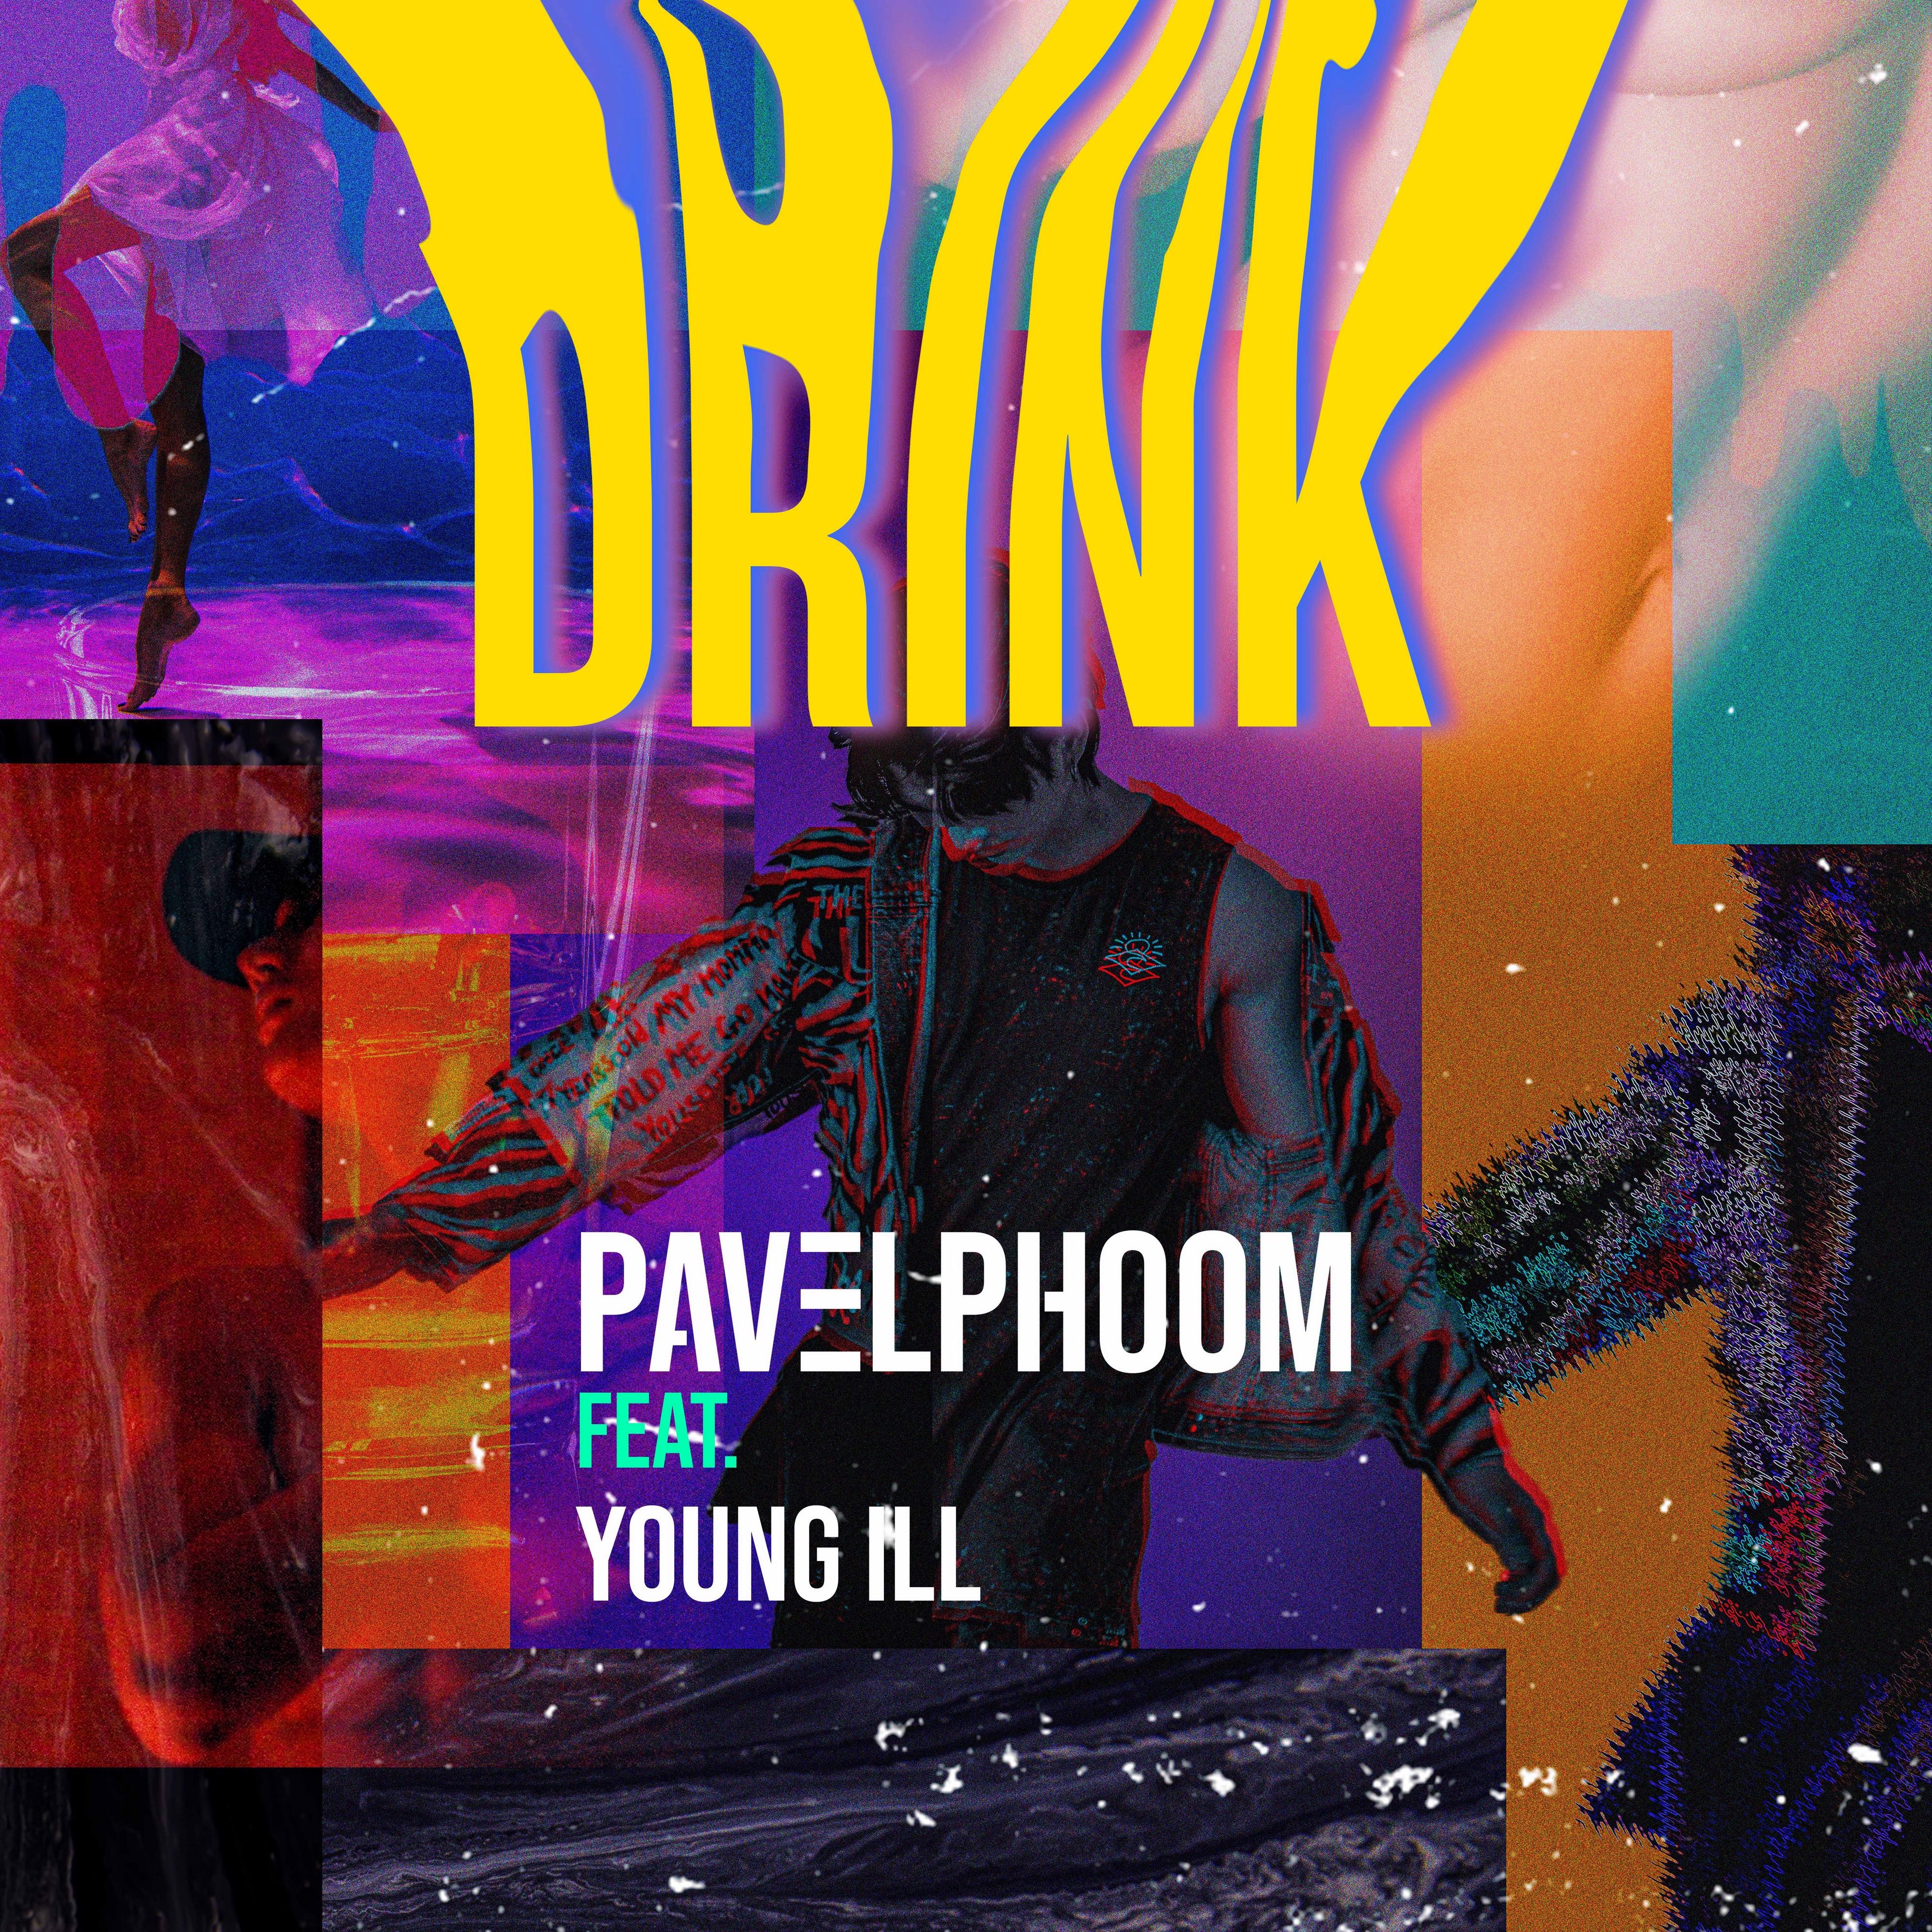 Drink (feat. Young ill) [feat. Young ill]